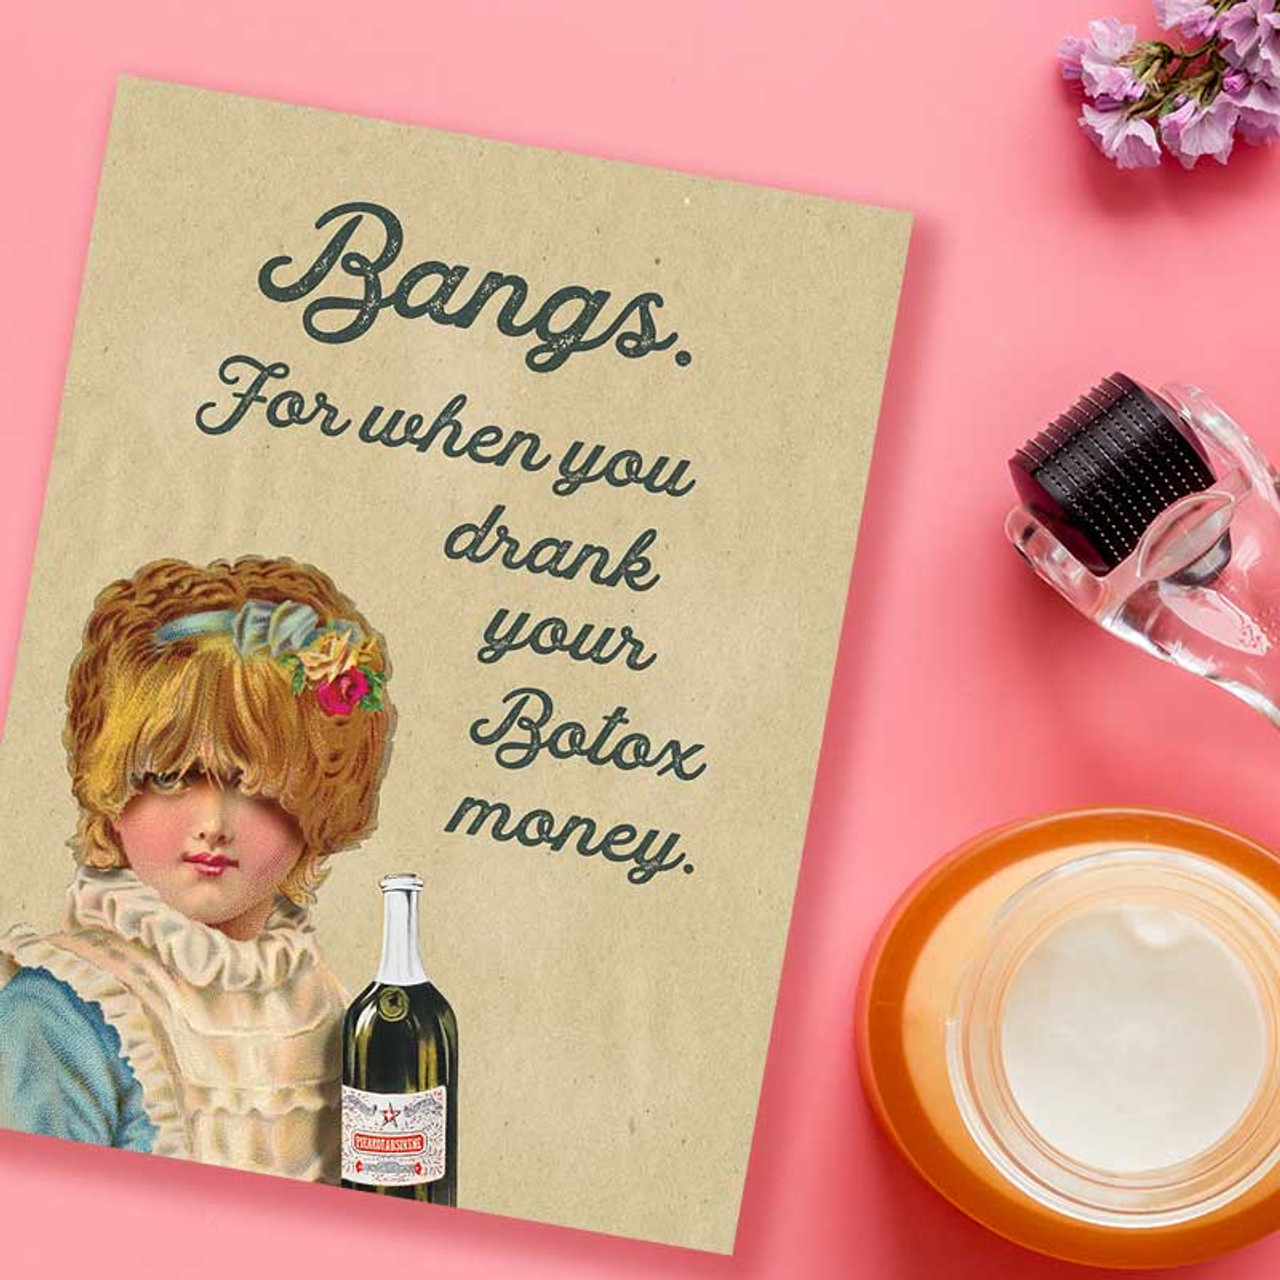 Bangs For When You Drank Your Botox Money Greeting Card